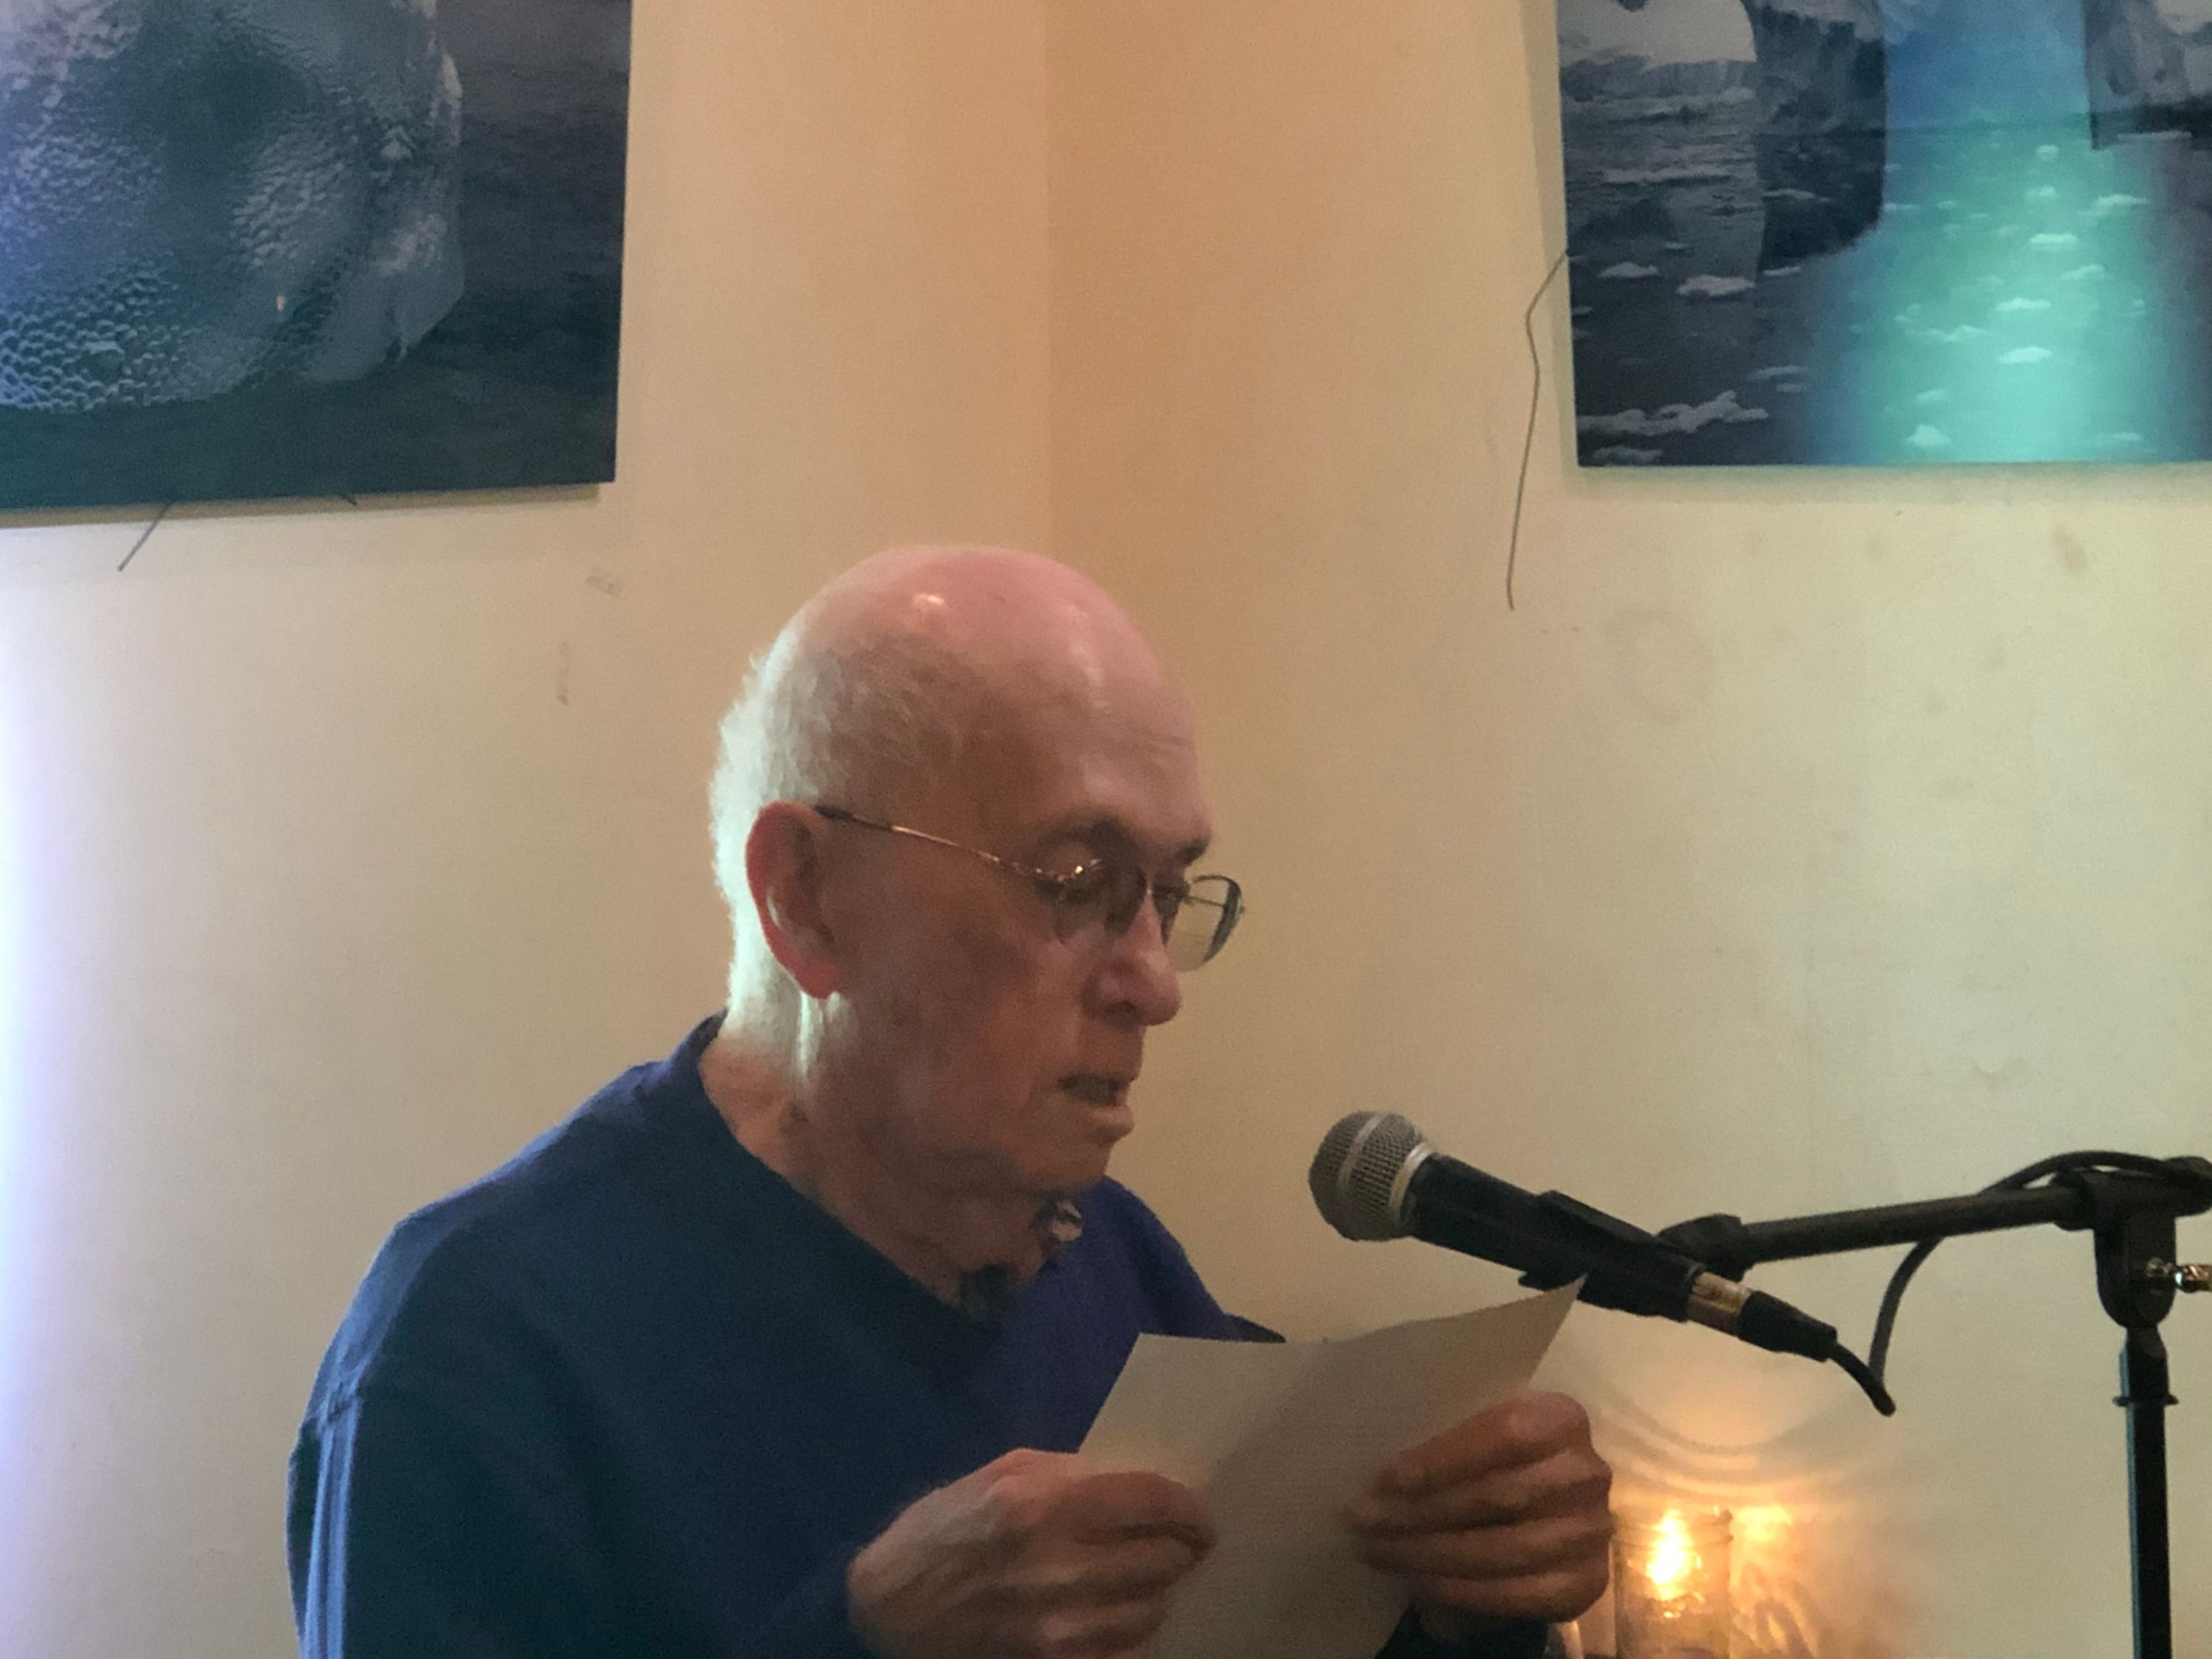 norman stock at the first tuesdays open mic - oct 1 2019